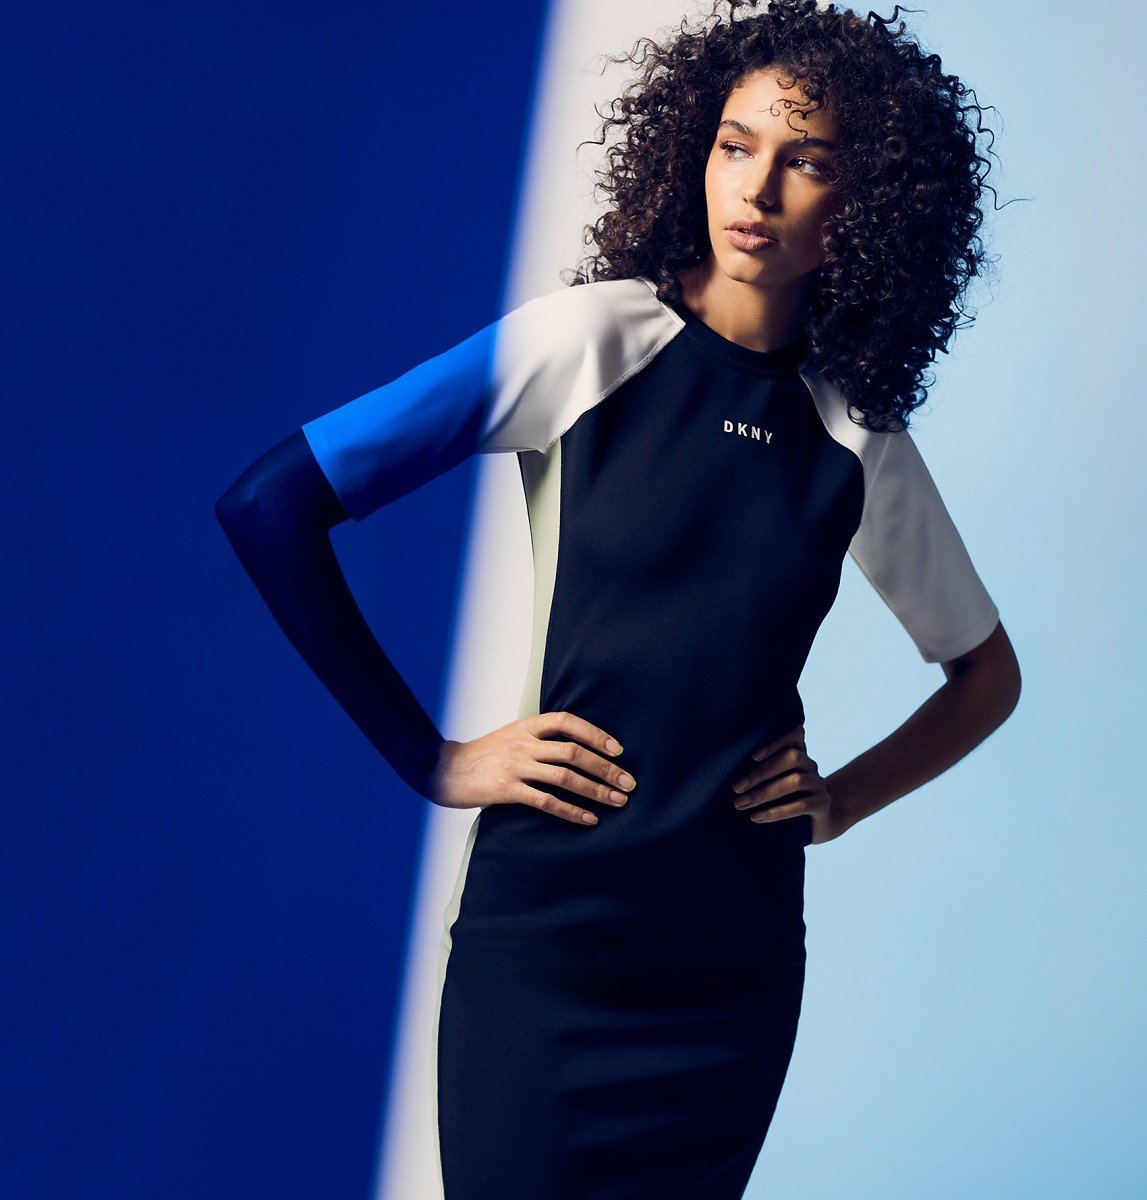 Up to 70% Off DKNY Sale + Extra 30% Off